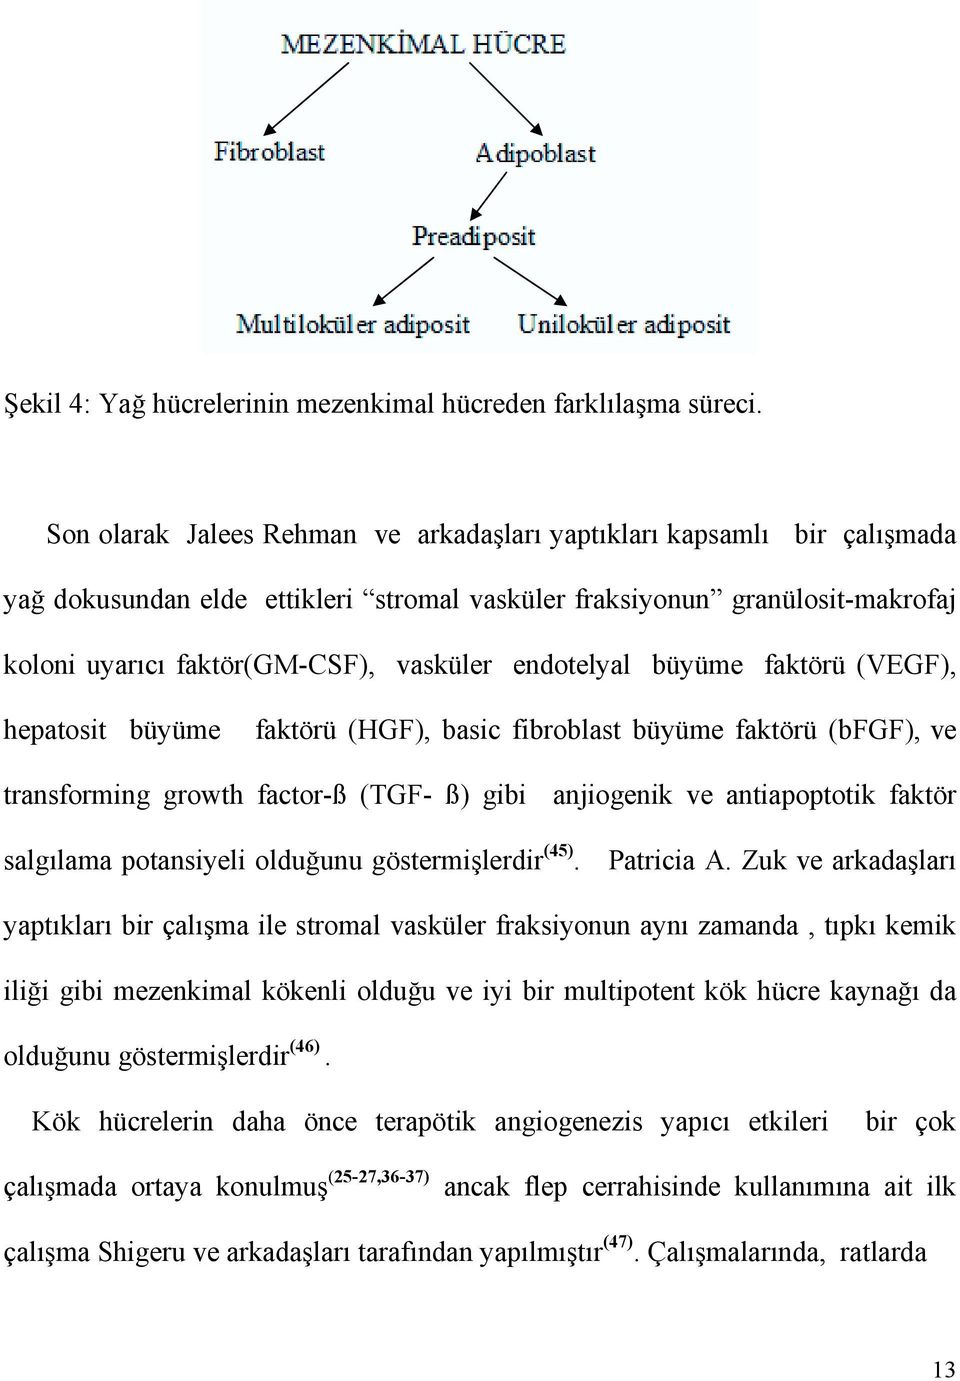 endotelyal büyüme faktörü (VEGF), hepatosit büyüme faktörü (HGF), basic fibroblast büyüme faktörü (bfgf), ve transforming growth factor-ß (TGF- ß) gibi anjiogenik ve antiapoptotik faktör salgõlama